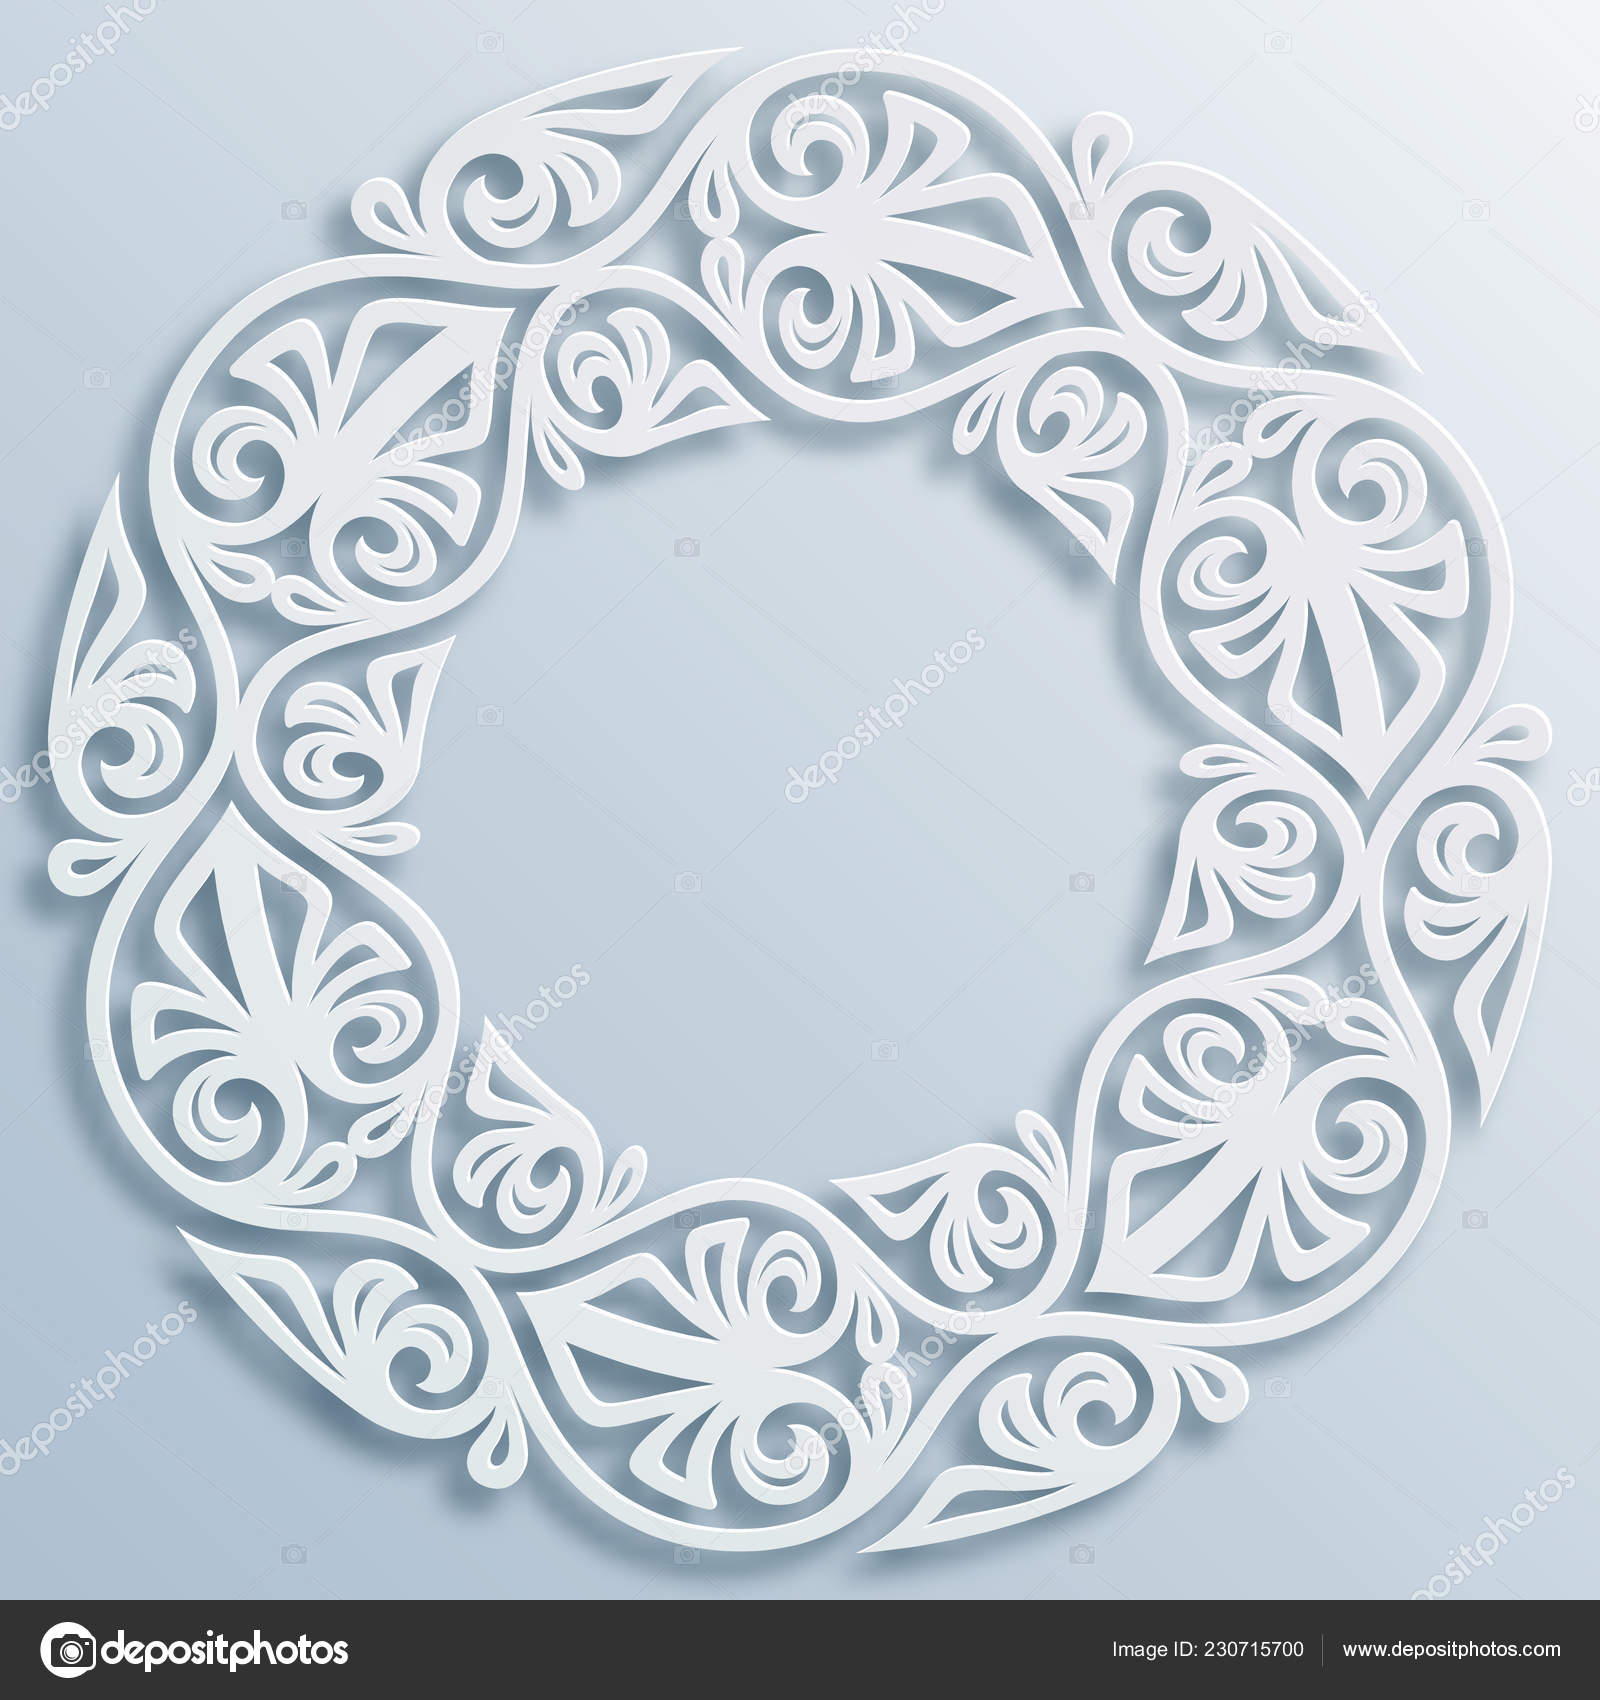 Motif Relief Paper Style Round White Frame Vignette Vector Geometric Border